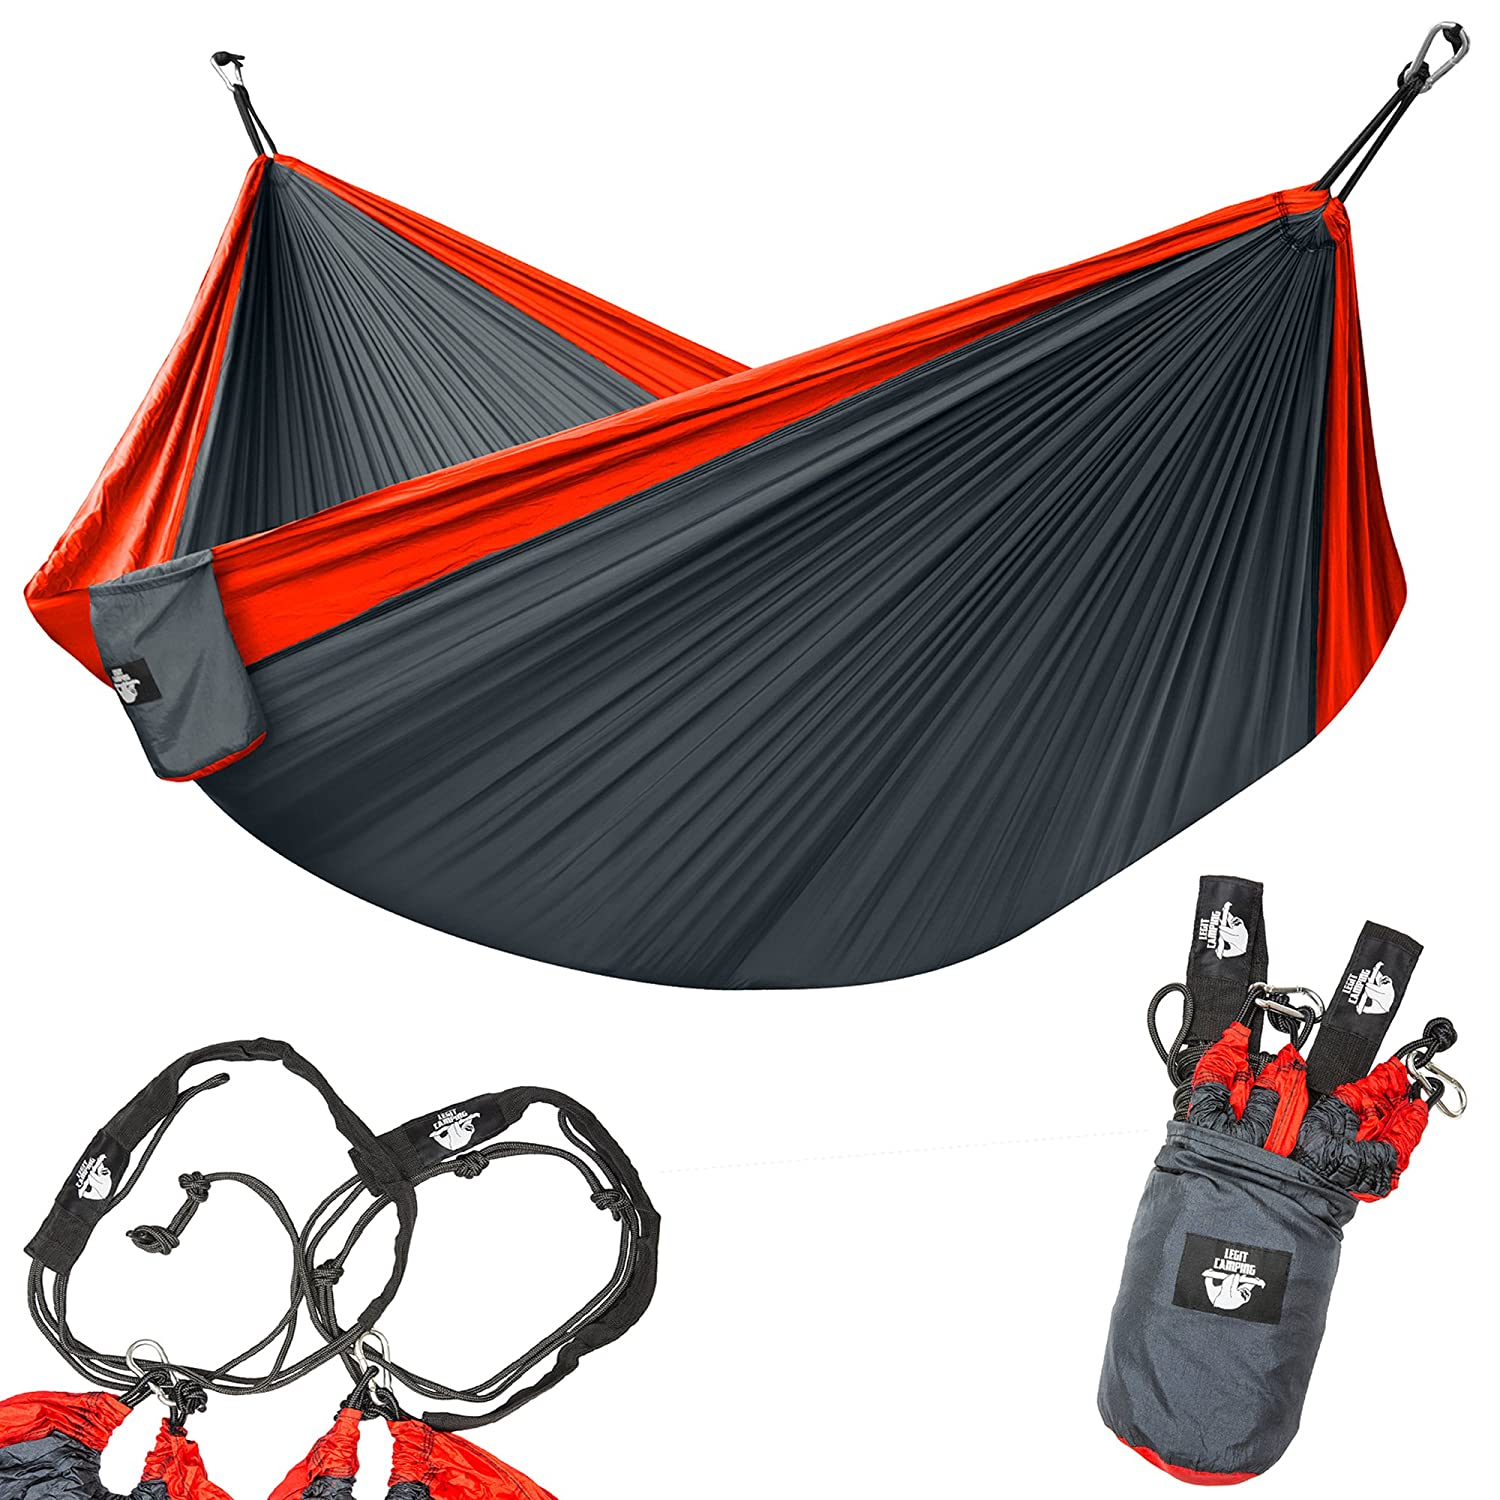 amazon    legit camping double hammock with nylon straps and steel carabiners   red   grey  automotive amazon    legit camping double hammock with nylon straps and      rh   amazon